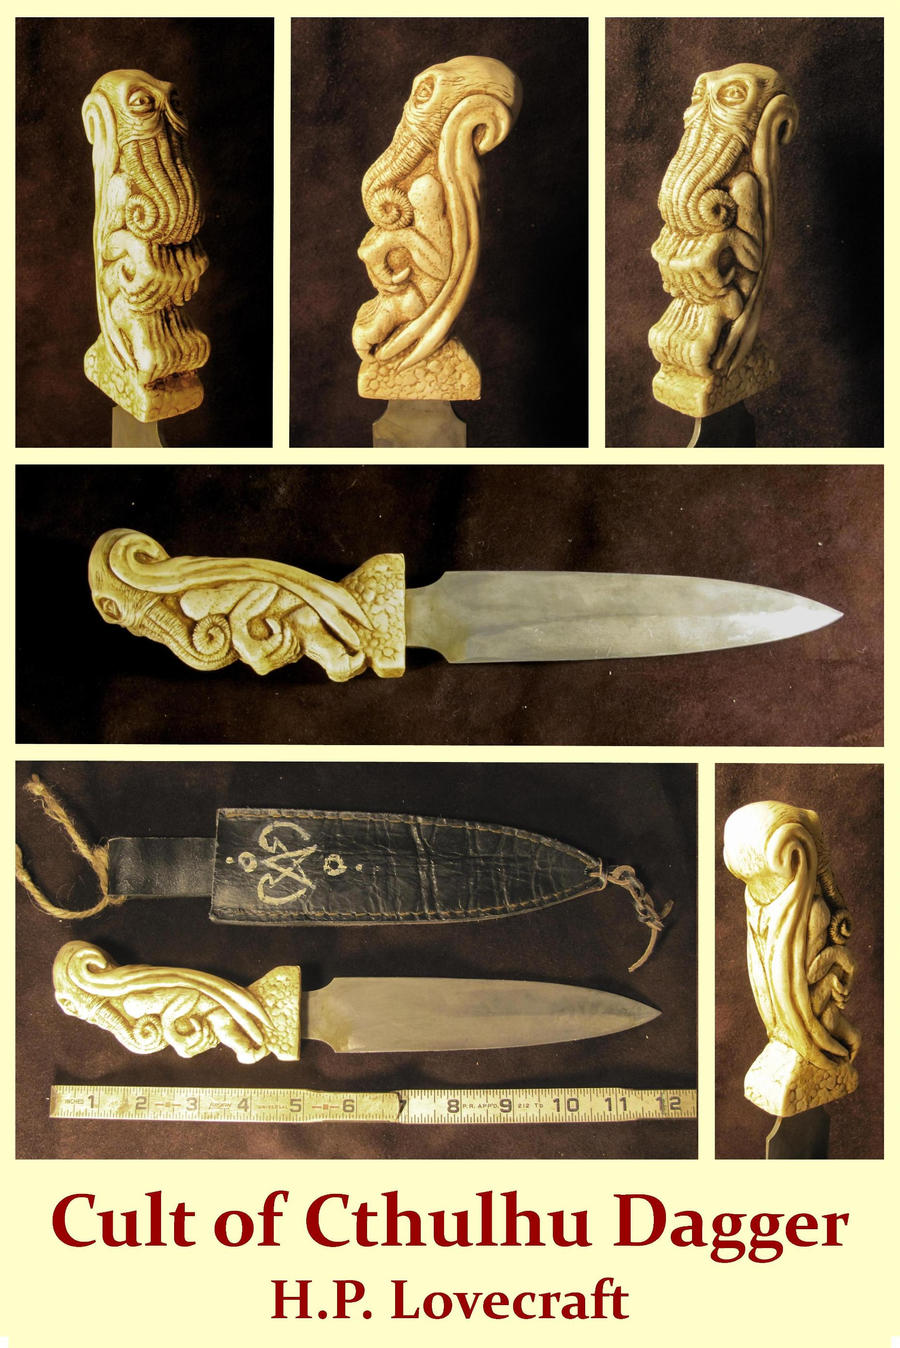 Cult of Cthulhu Dagger  - H.P. Lovecraft by zombiequadrille